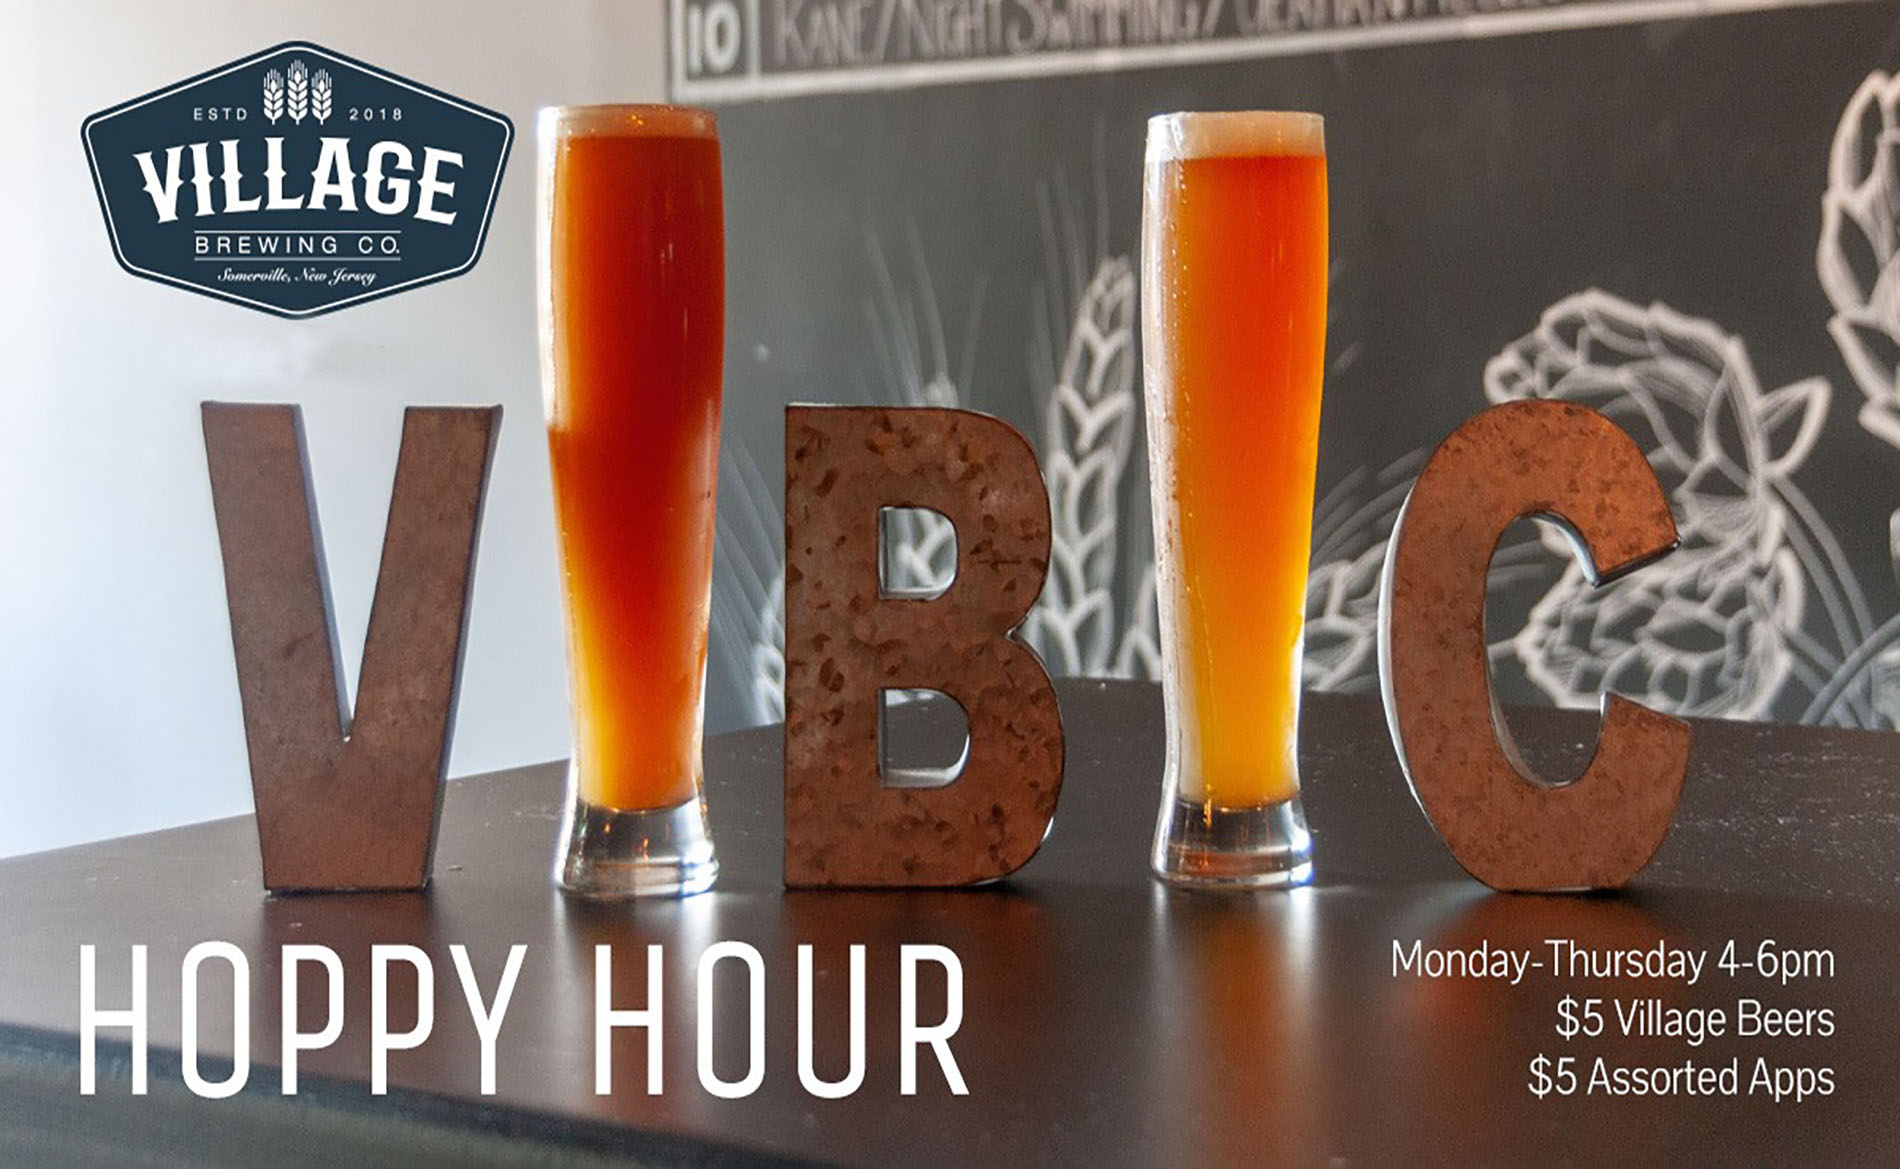 Happy Hour at Village Brewing